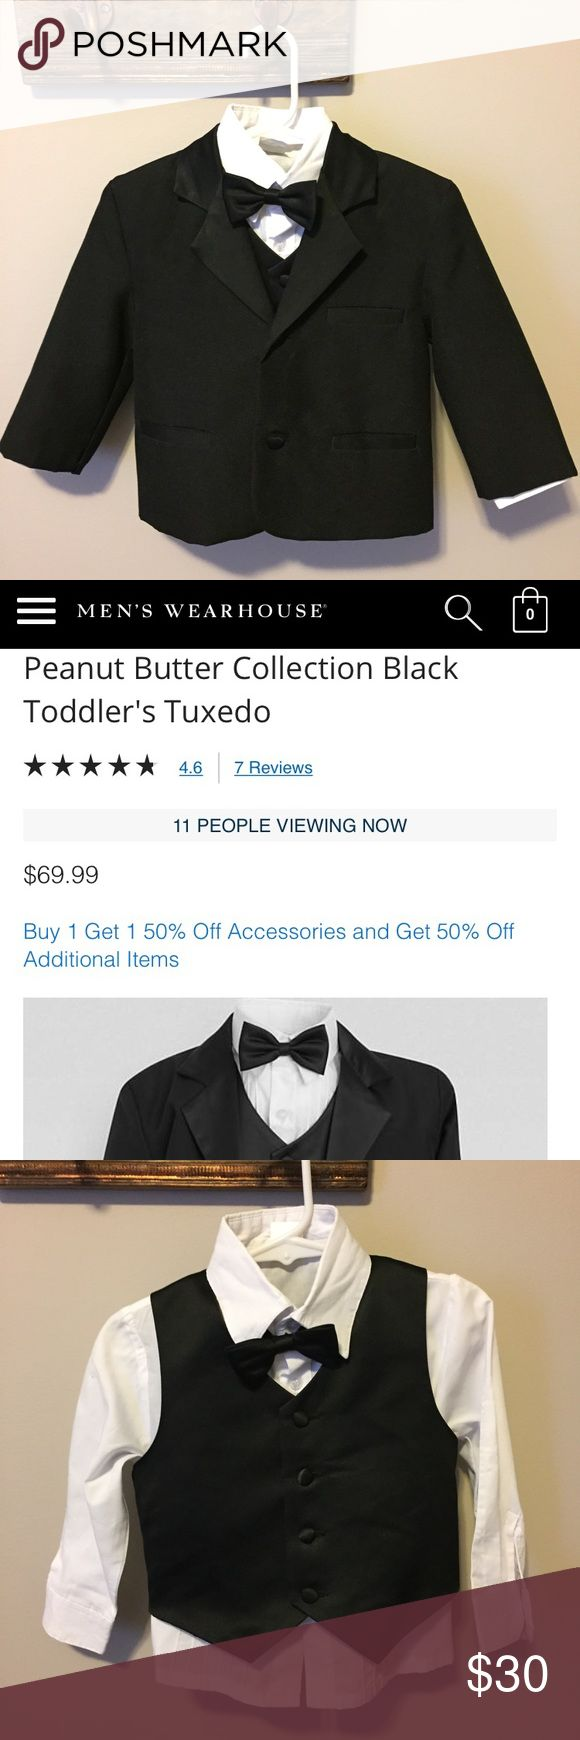 Toddler Tuxedo Men's Warehouse Worn Once Toddler Tuxedo Men's Warehouse Peanut Butter Collection - Worn Once! Includes: jacket, pants, shirt, vest and bow tie. Size 2 on tag Men's Warehouse Matching Sets